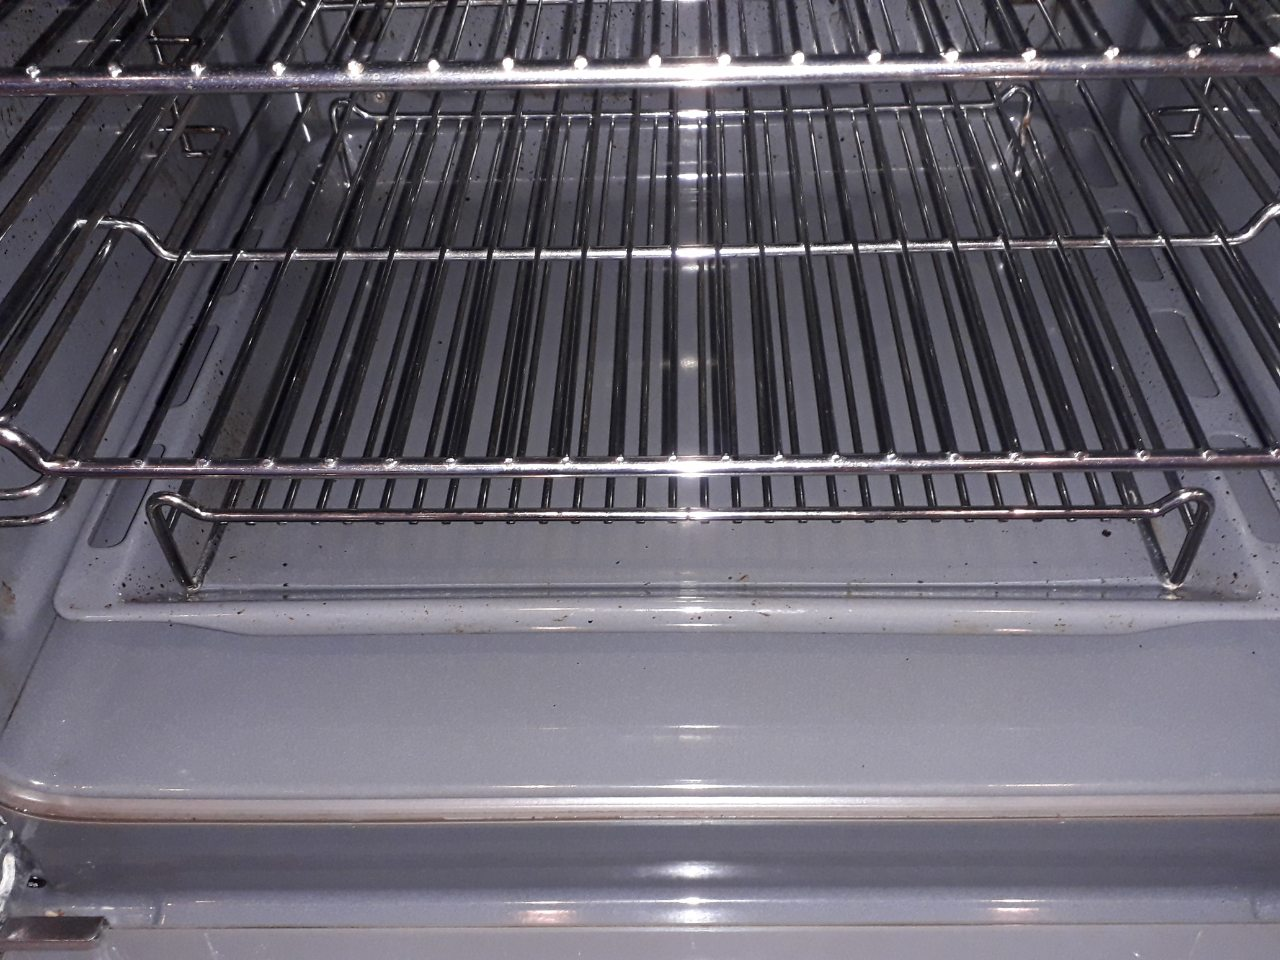 best product for cleaning up a kitchen oven